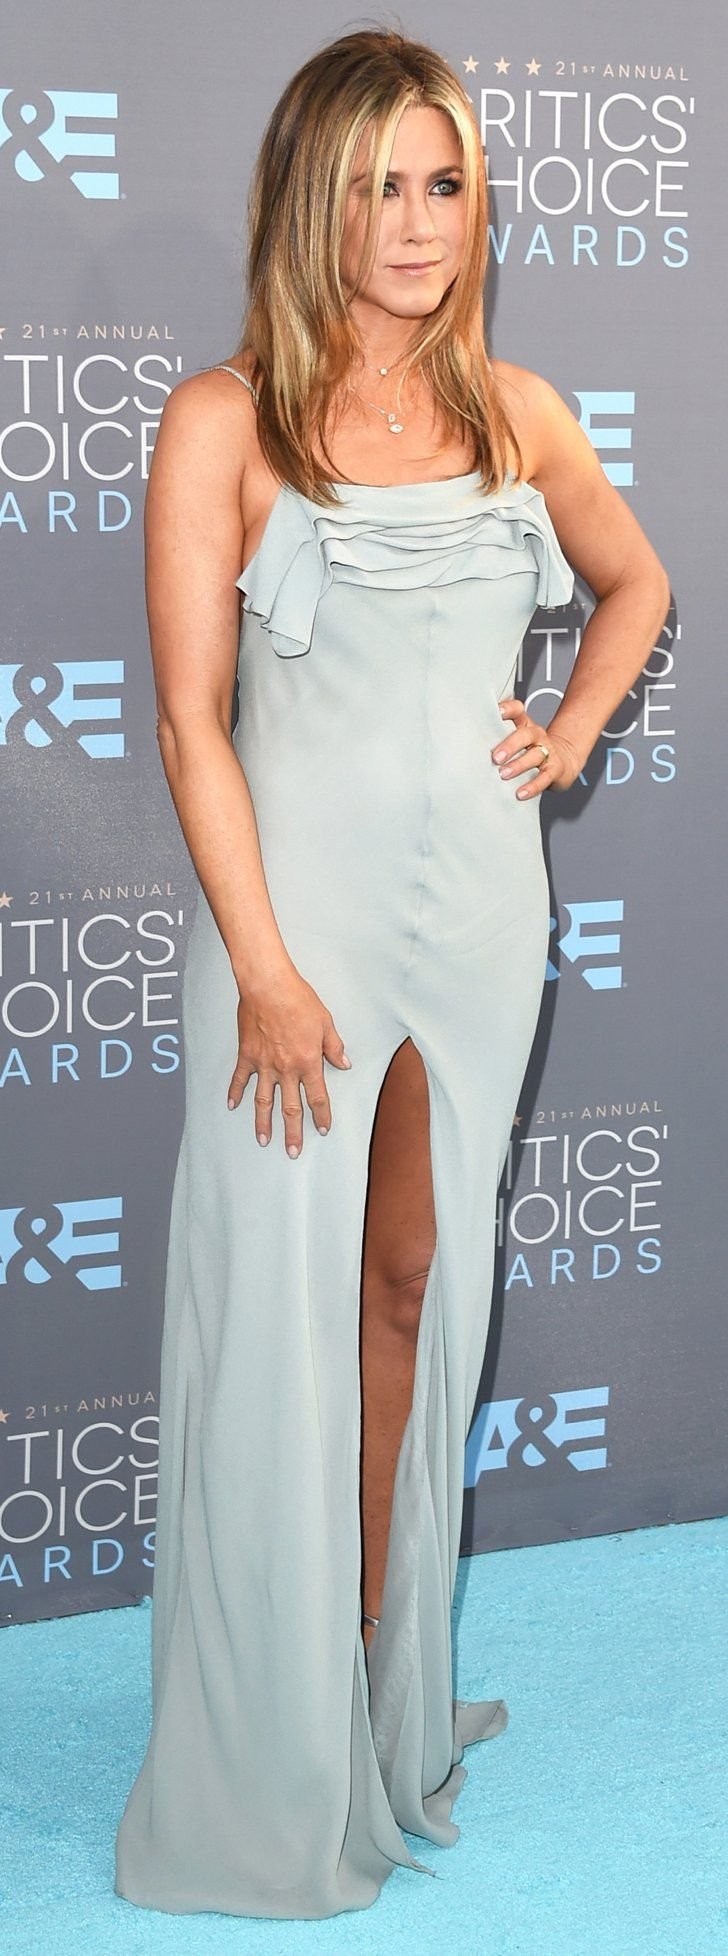 Pin for Later: The Sexiest Trend of All Dominated the Red Carpet at the Critics' Choice Awards